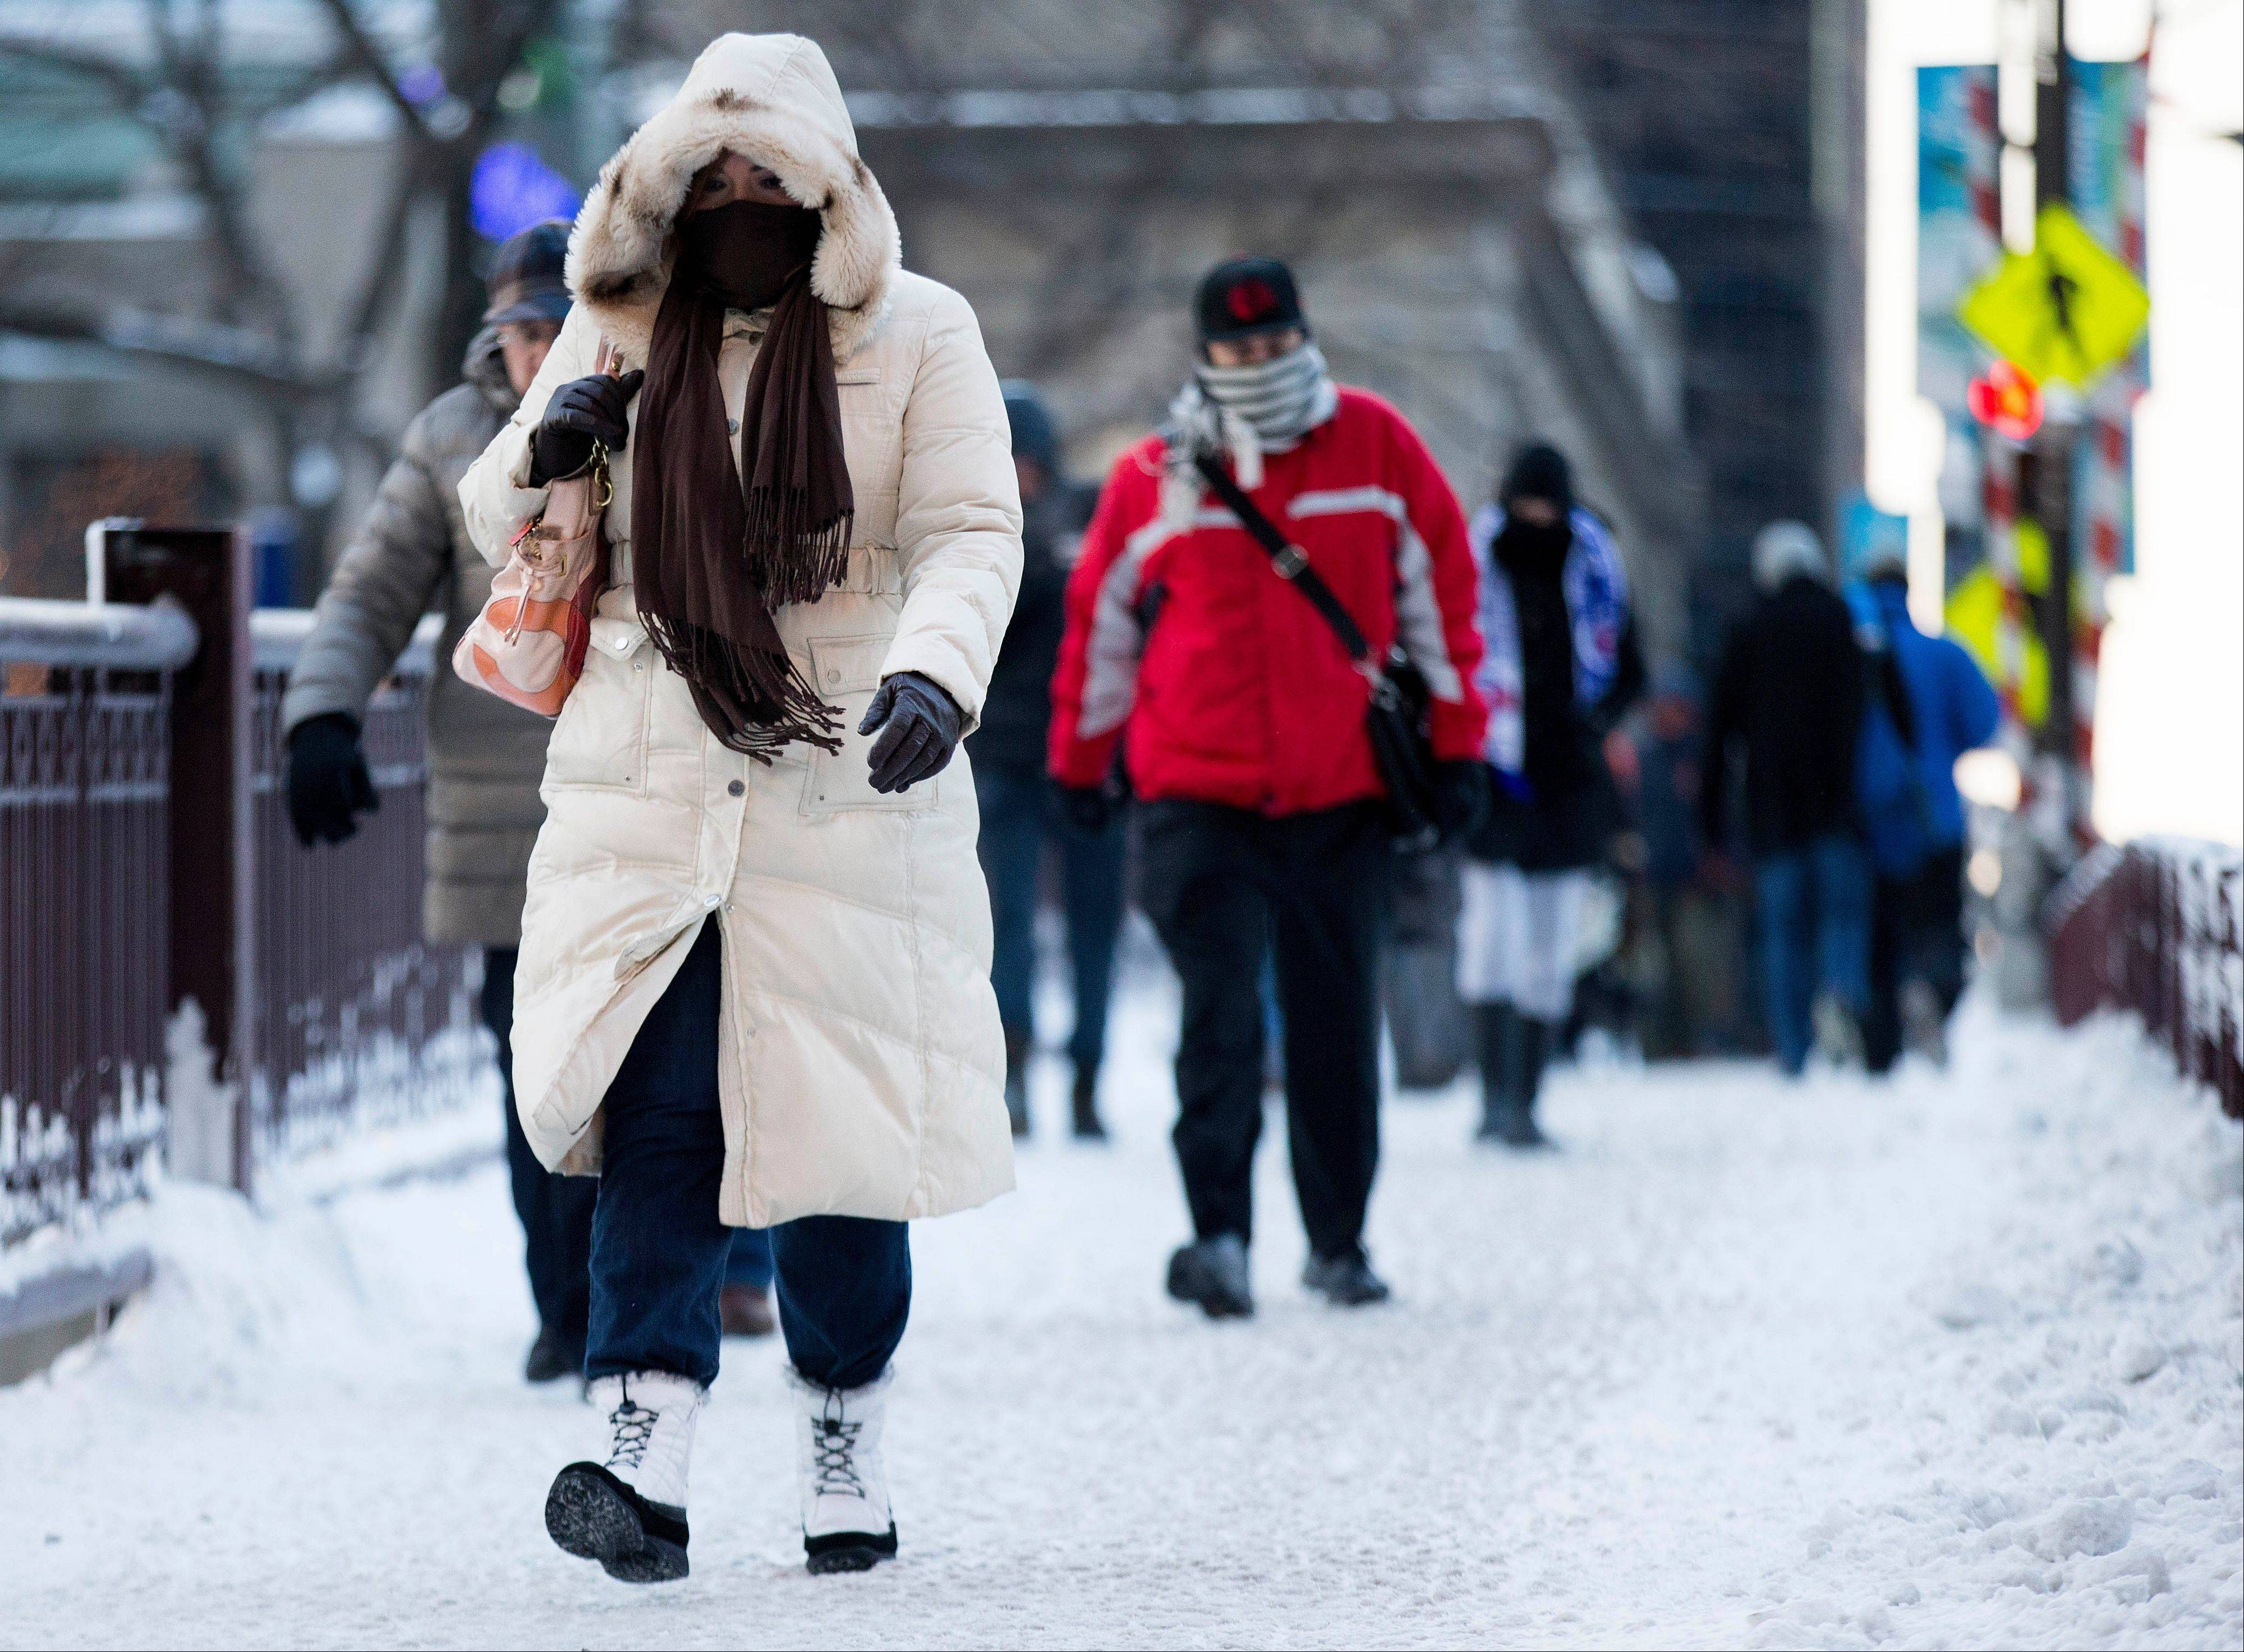 Commuters depart from Union Station with wind chills nearing minus 30 Fahrenheit on Tuesday, Jan. 7, 2014, in Chicago.